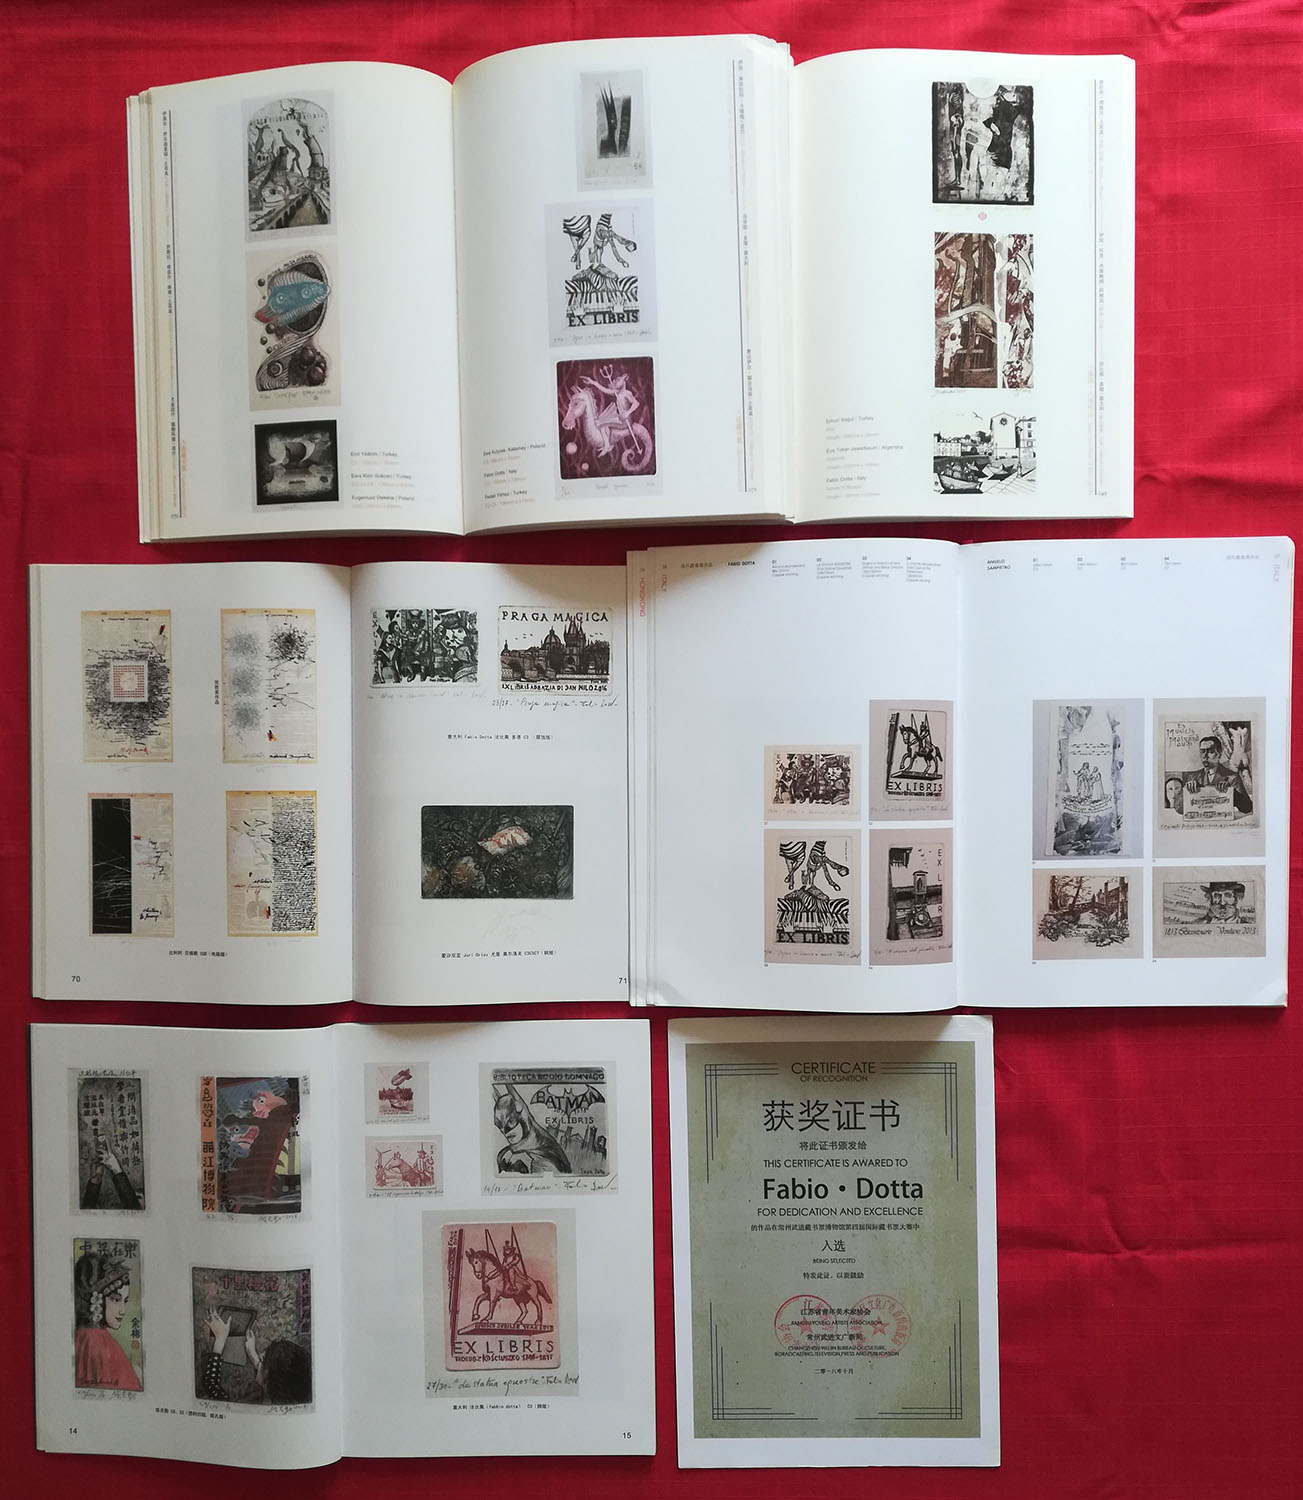 Recent publications in CHINA in Museums and University of etchings by FABIO DOTTA - Copia